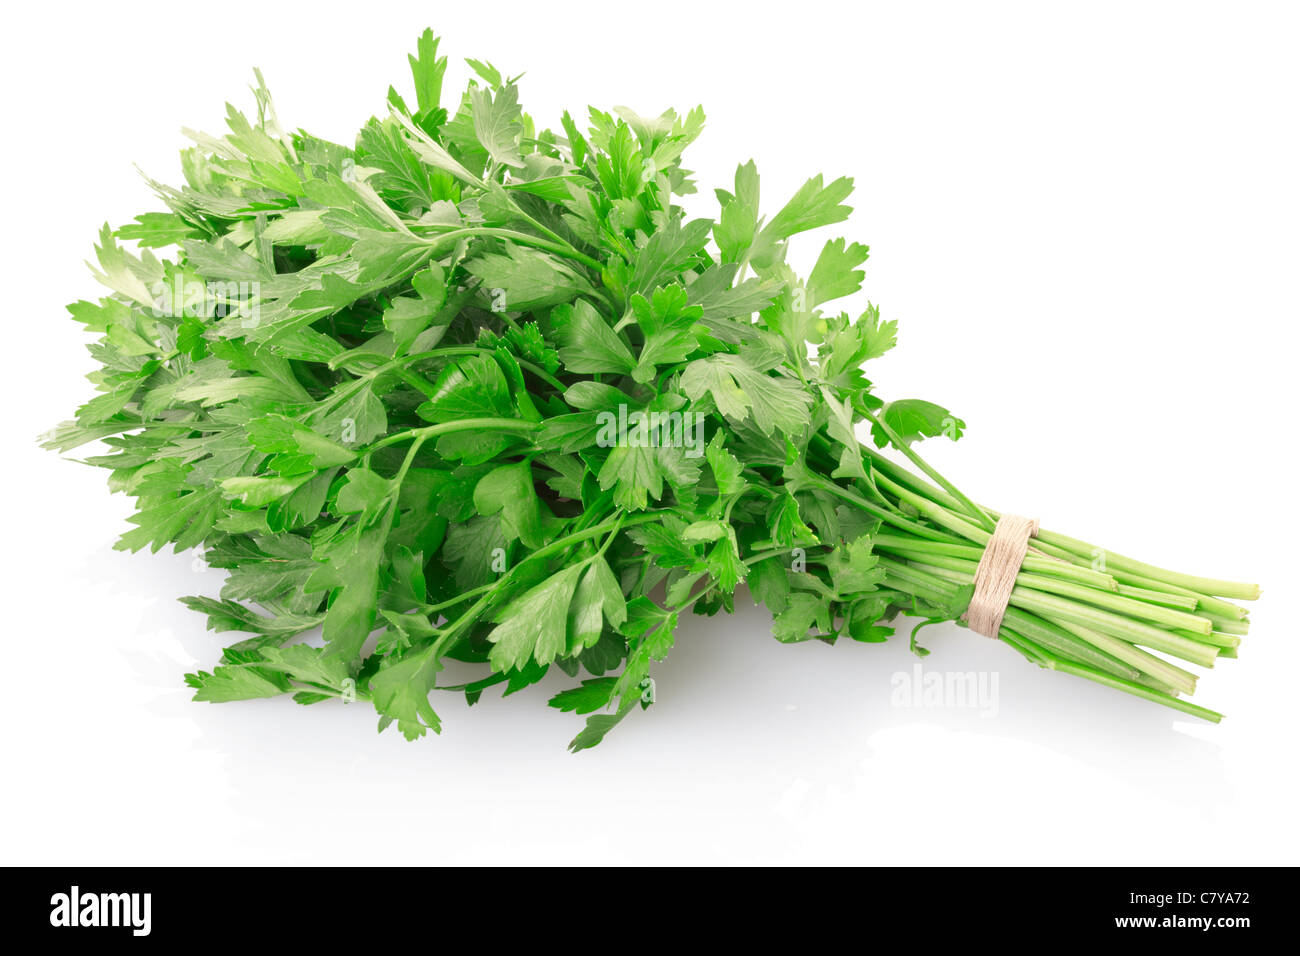 Green parsley bunch - Stock Image